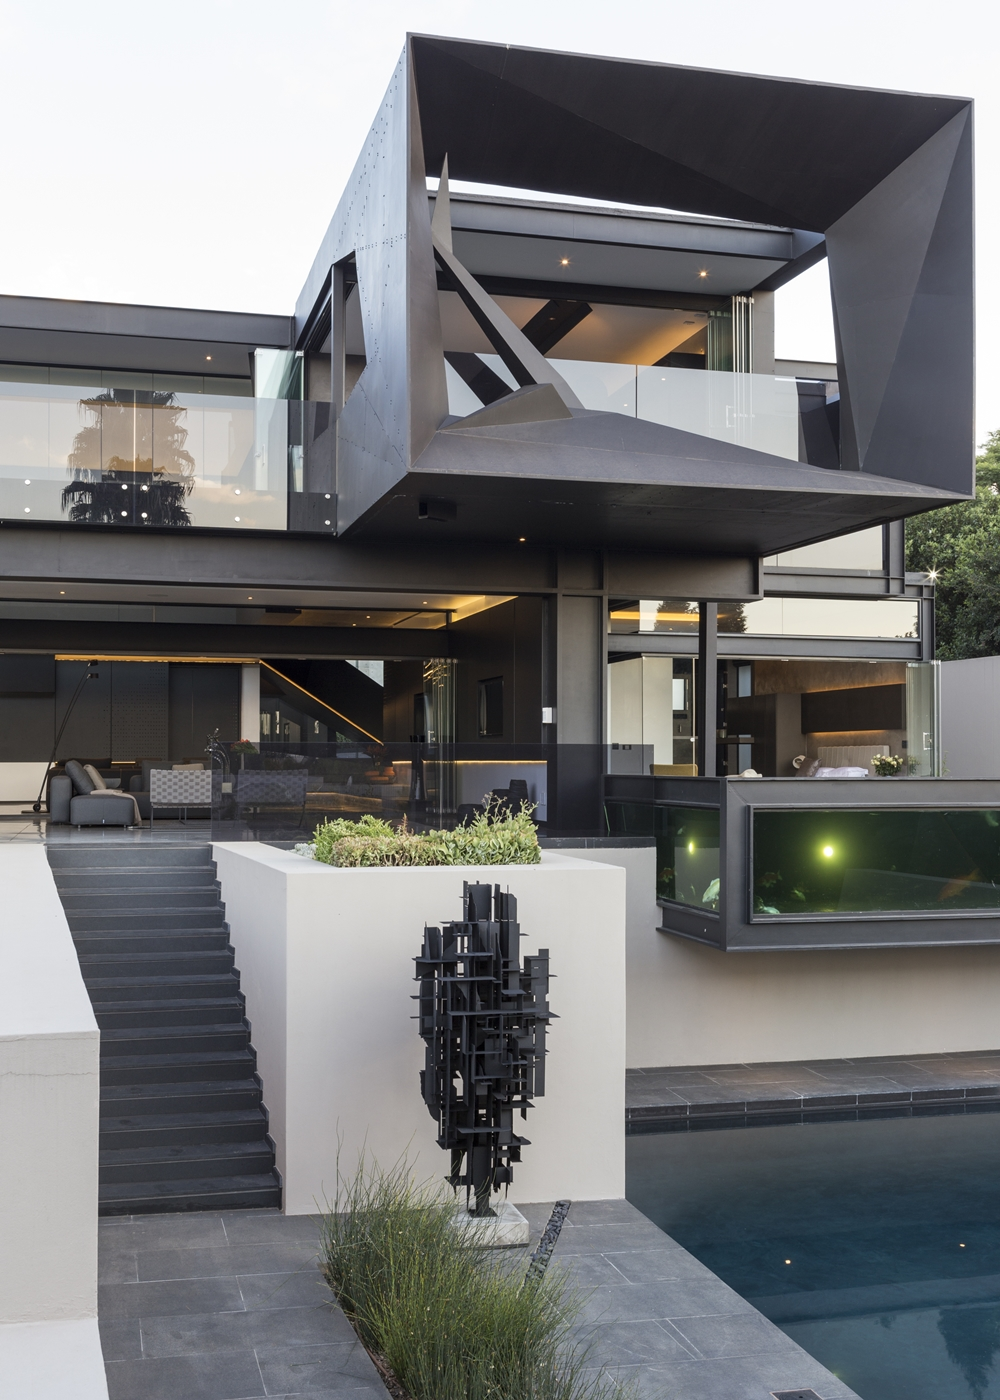 Best houses in the world amazing kloof road house for Amazing architecture house plans